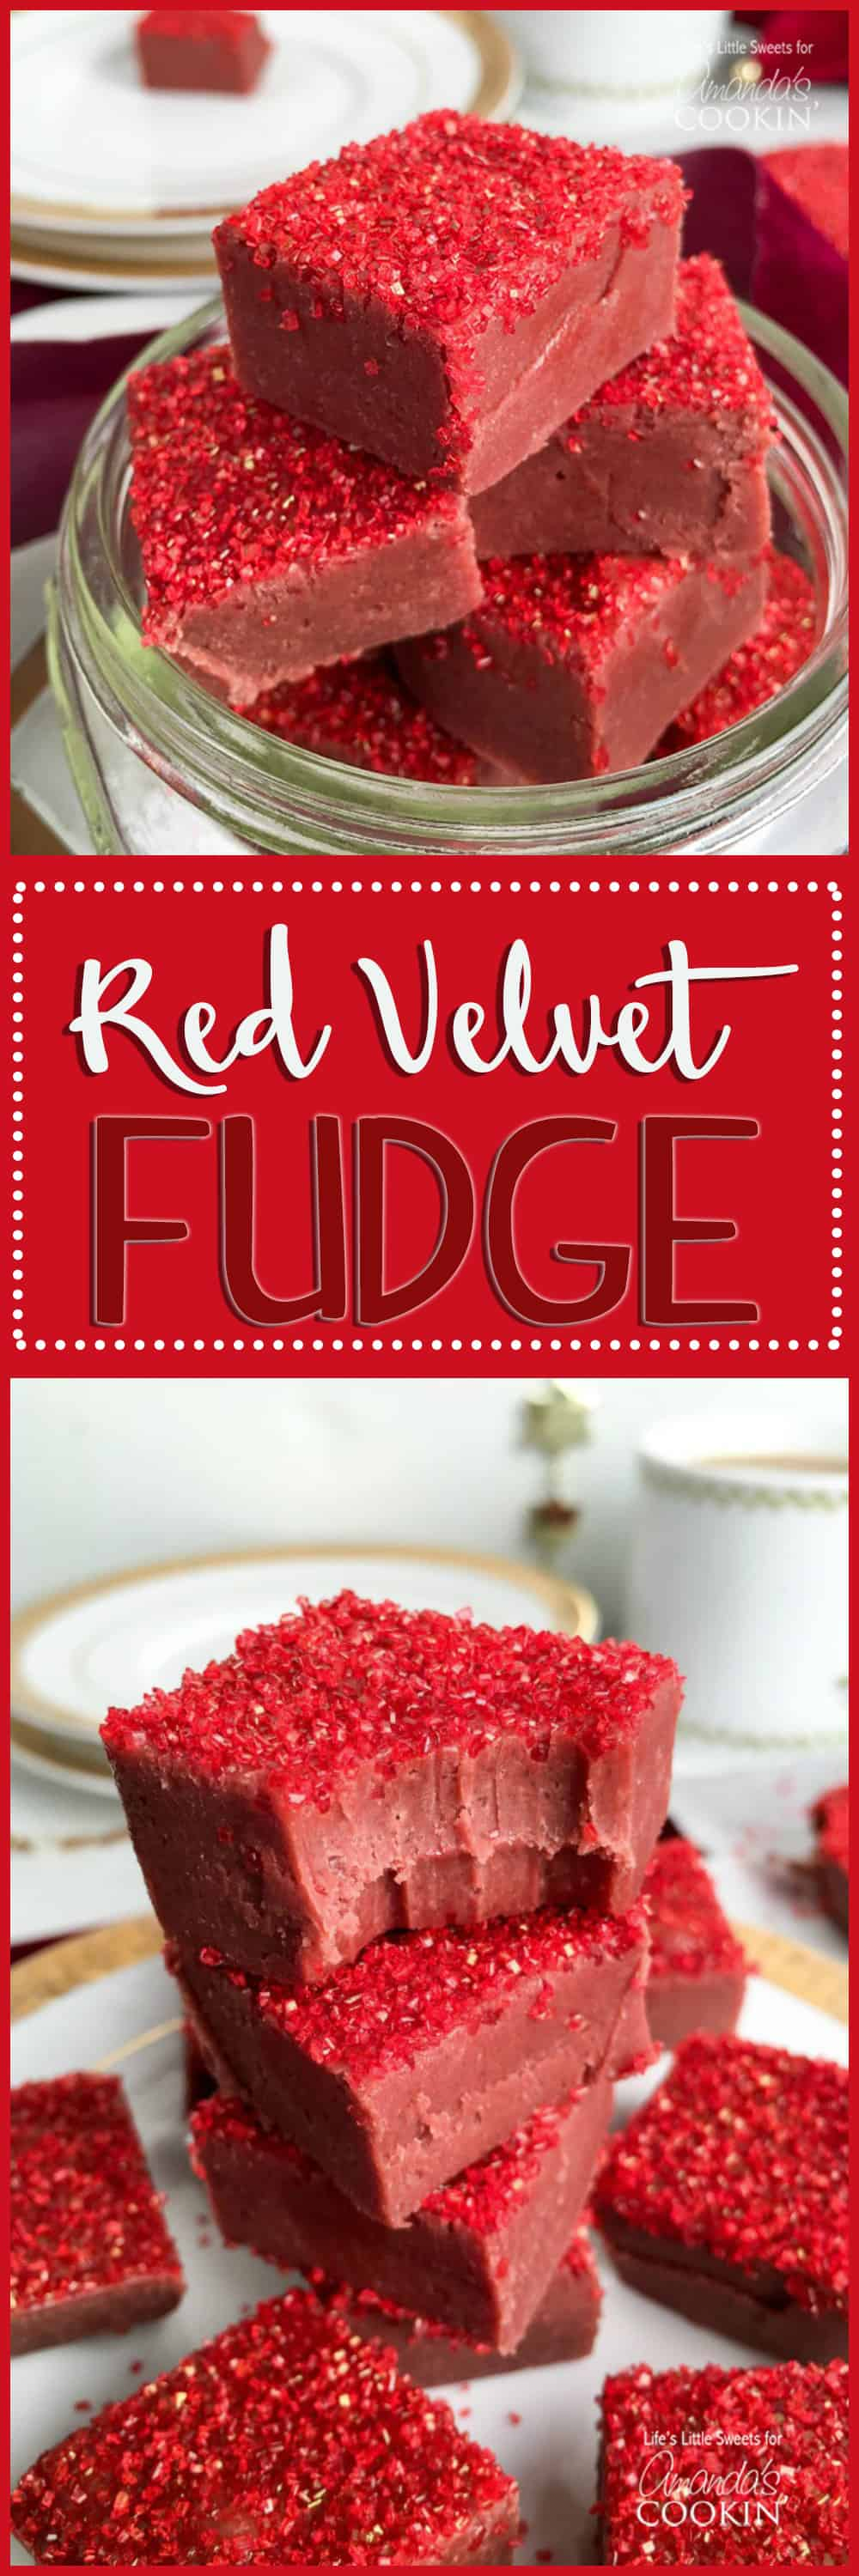 Red Velvet Fudge is the perfect sweet recipe to indulge in yourself or give as a gift for Valentine's Day, Christmas, birthdays or anniversaries!